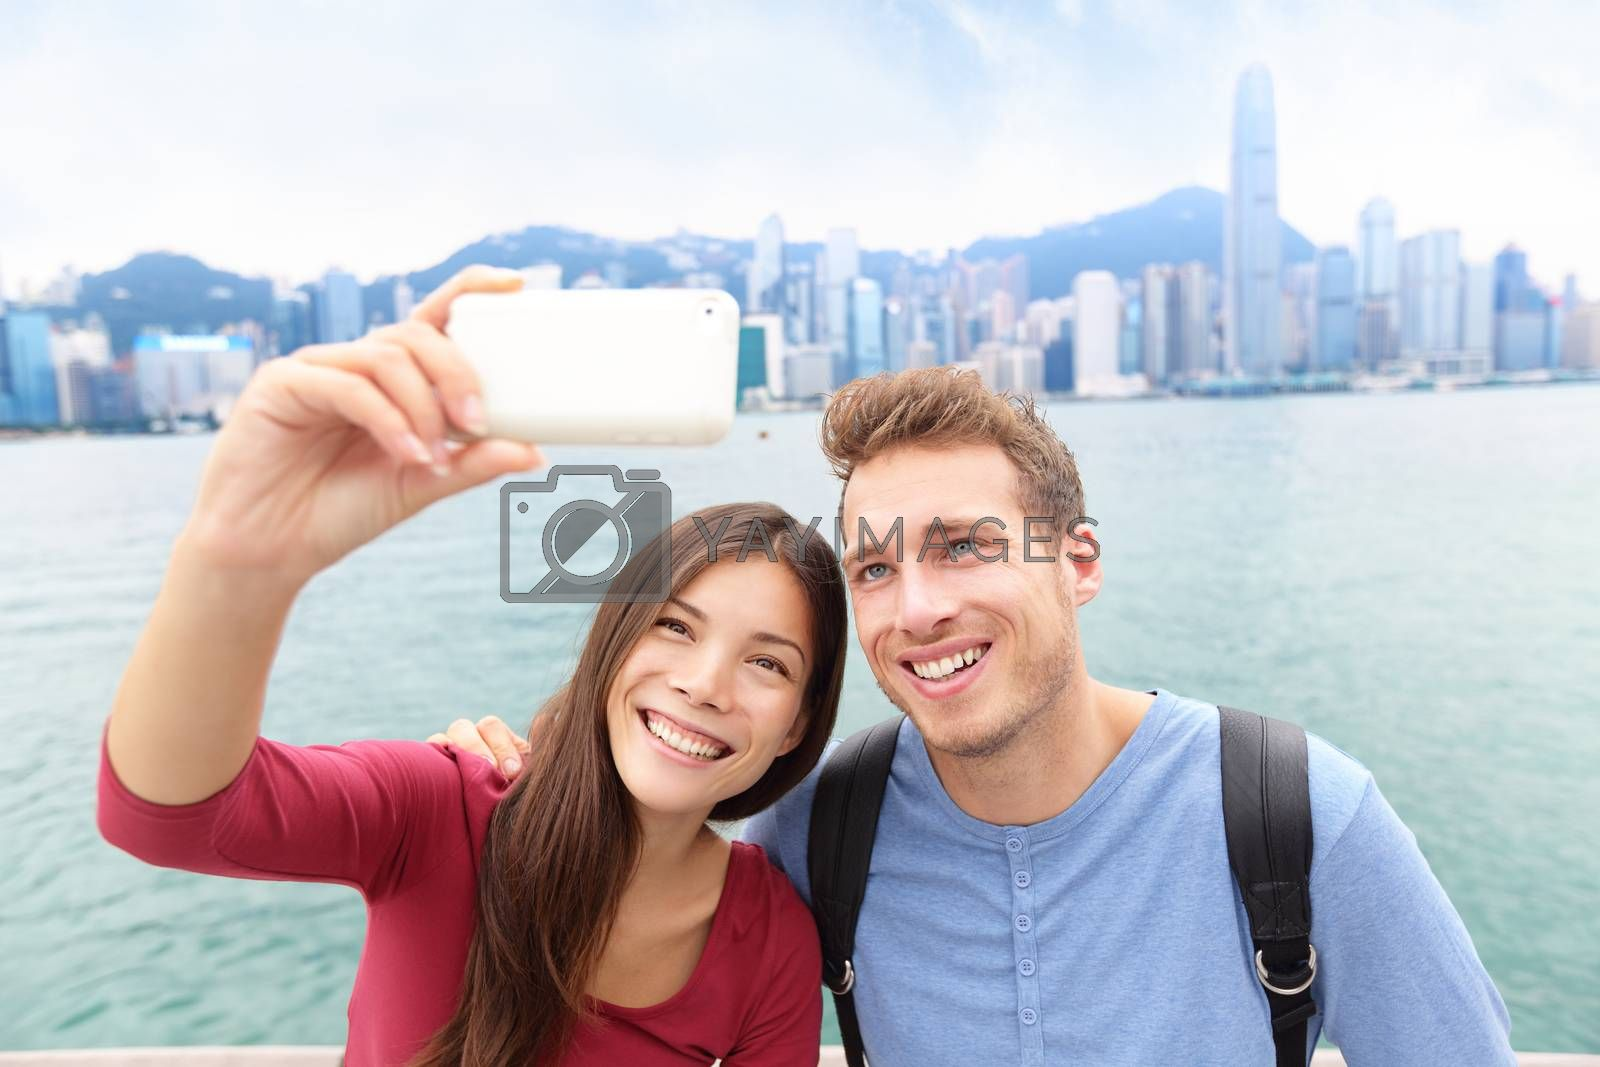 Selfie - friends taking self-portrait picture photo in Hong Kong enjoying sightseeing on Tsim Sha Tsui Promenade and Avenue of Stars in Victoria Harbour, Kowloon, Hong Kong. Travel concept.